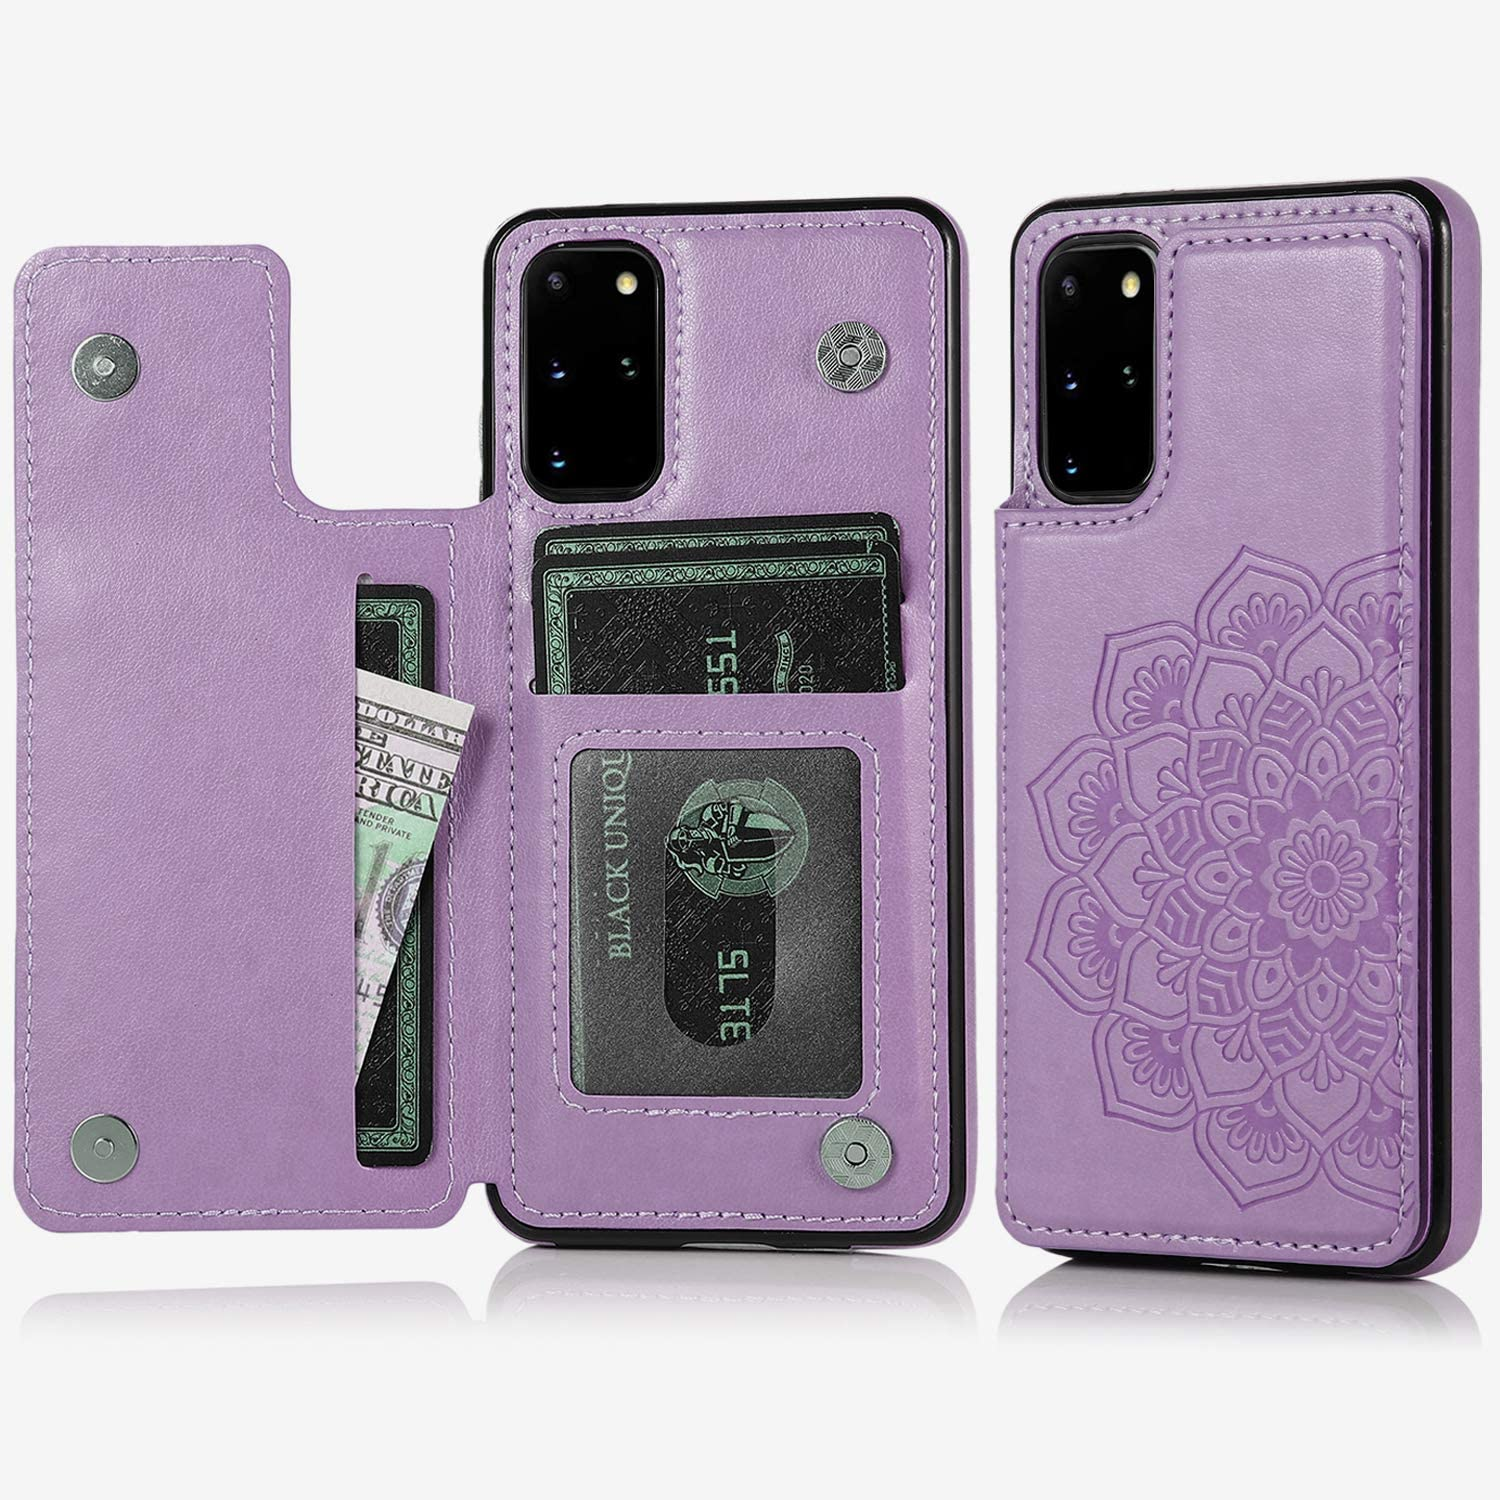 Acxlife Samsung Galaxy S20 Plus 5G Case S20+ Card Credit Holder Wallet Protective Cover with Card Slot and Slim Leather Case for Samsung S20 Plus 6.7Inch (Purple)